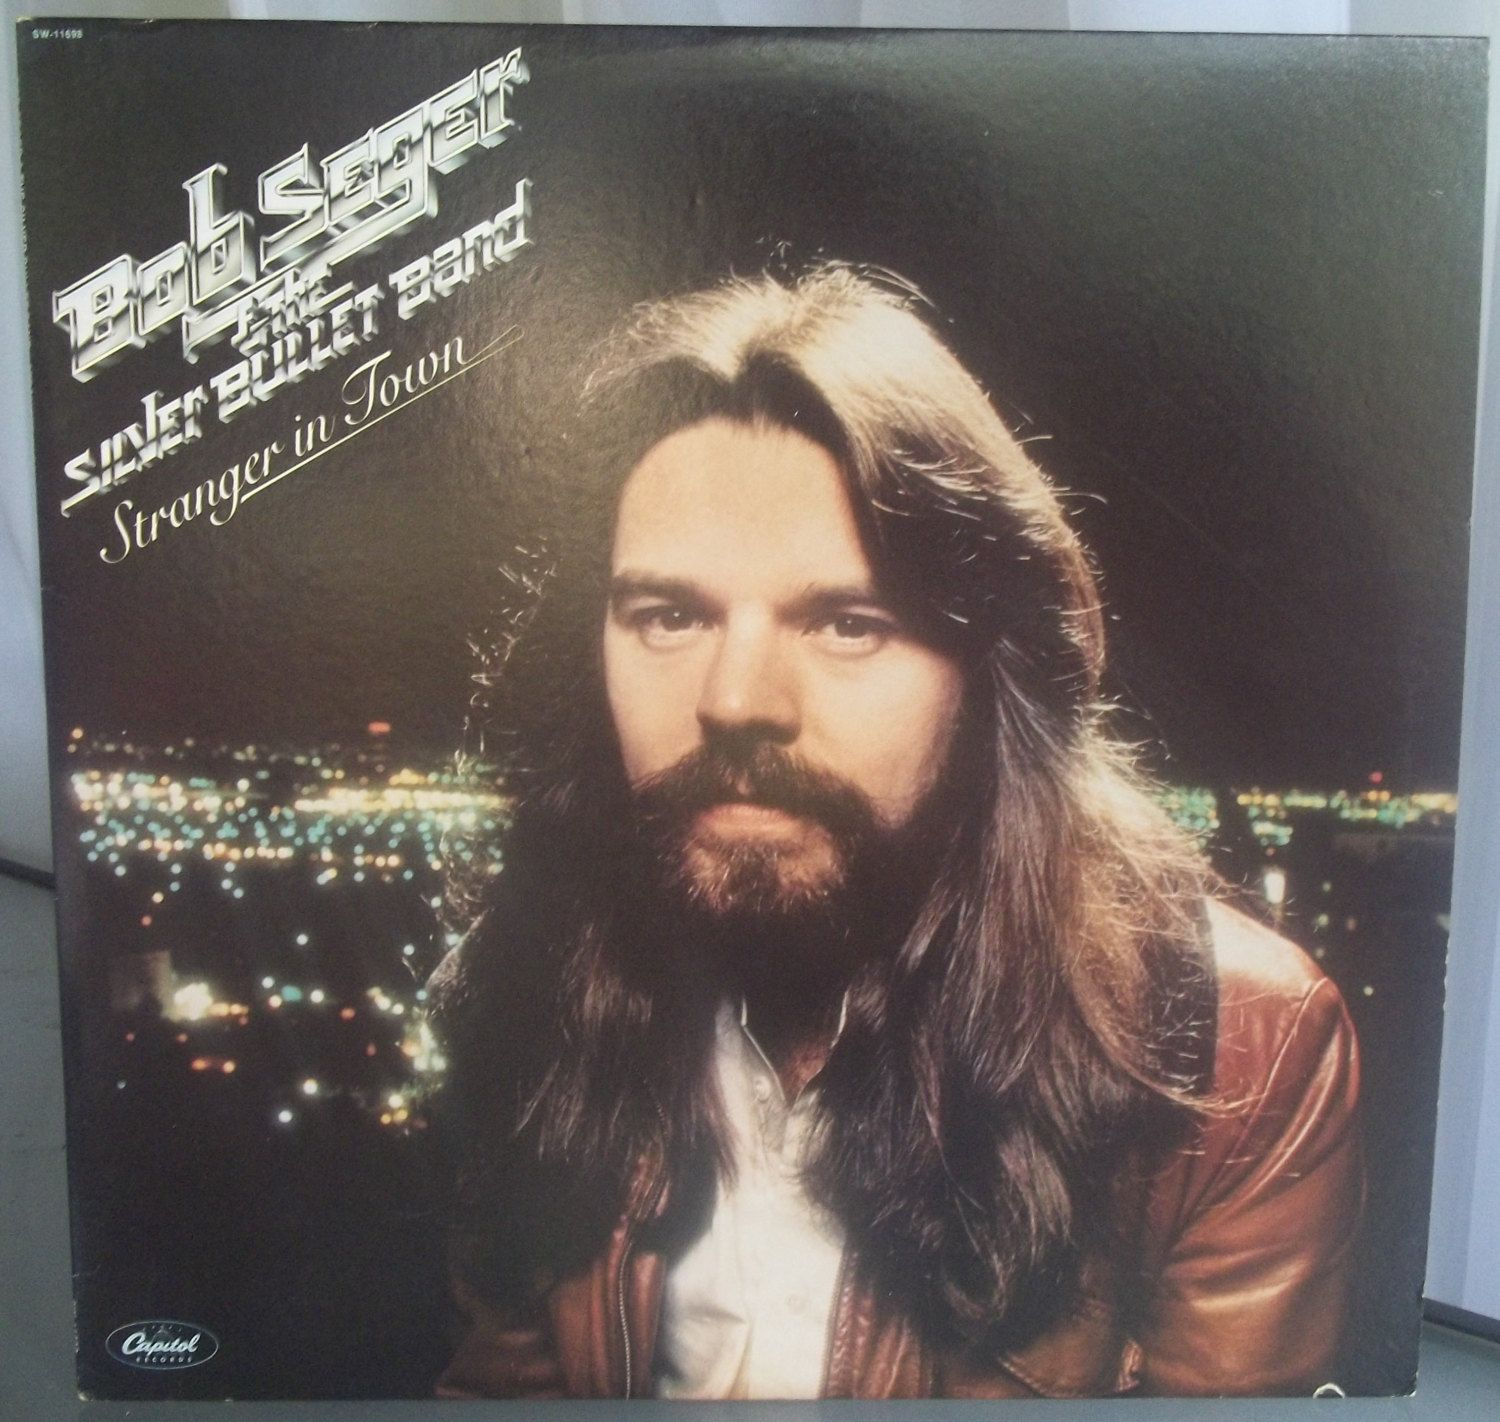 Bob Seger And The Silver Bullet Band Stranger In Town Vintage Record Album Vinyl Lp Rock And Roll Music Hollywood Night Bob Seger Music Albums Party Songs